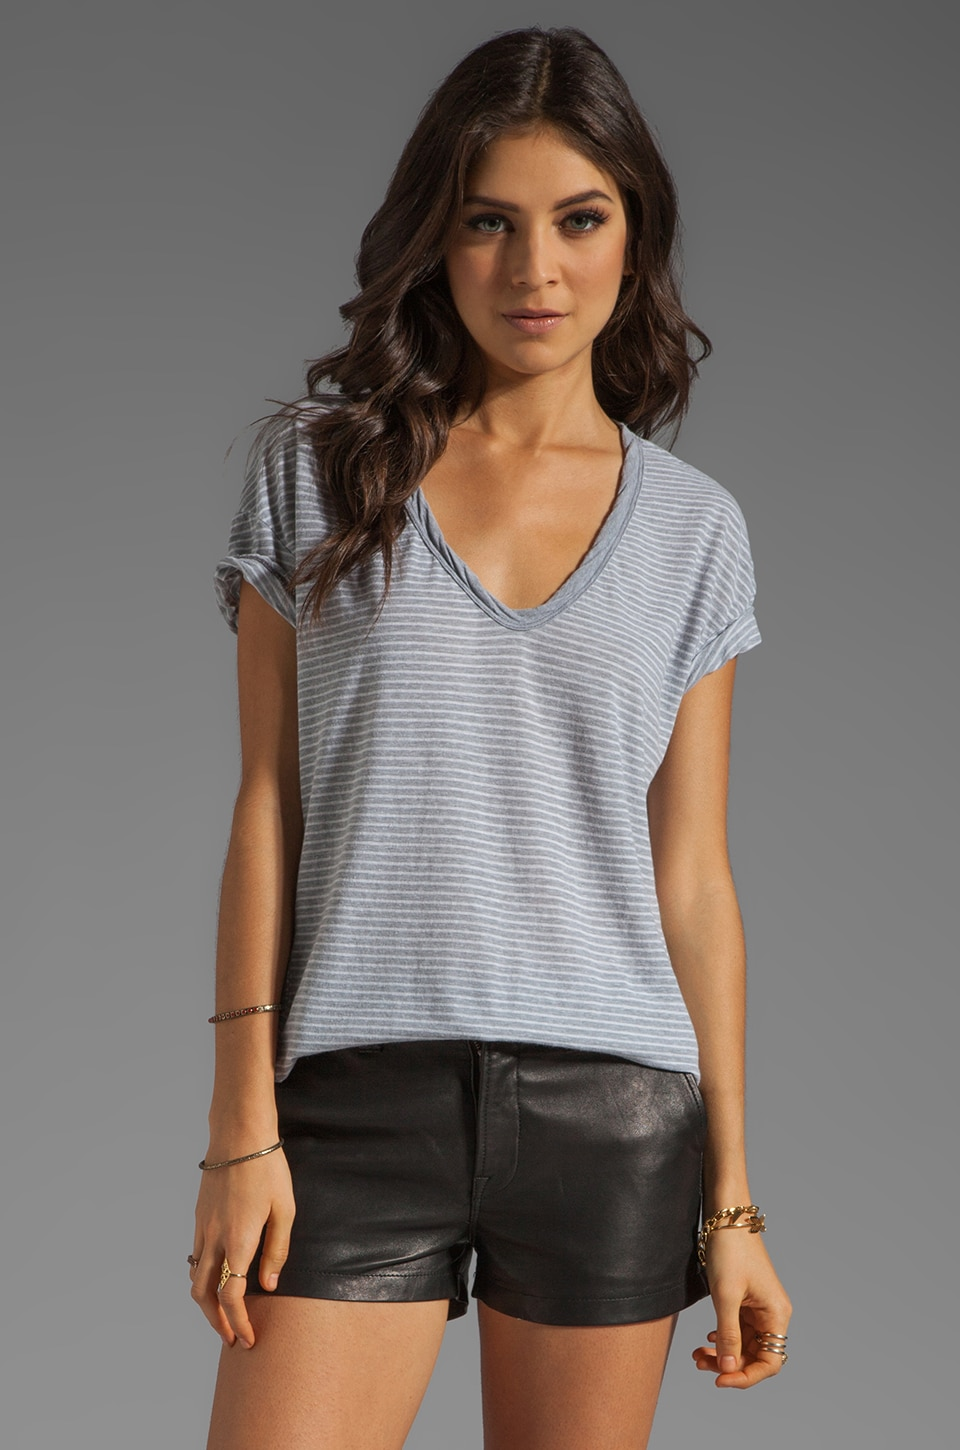 James Perse Easy V Neck Stripe Tee in Heather Grey/White